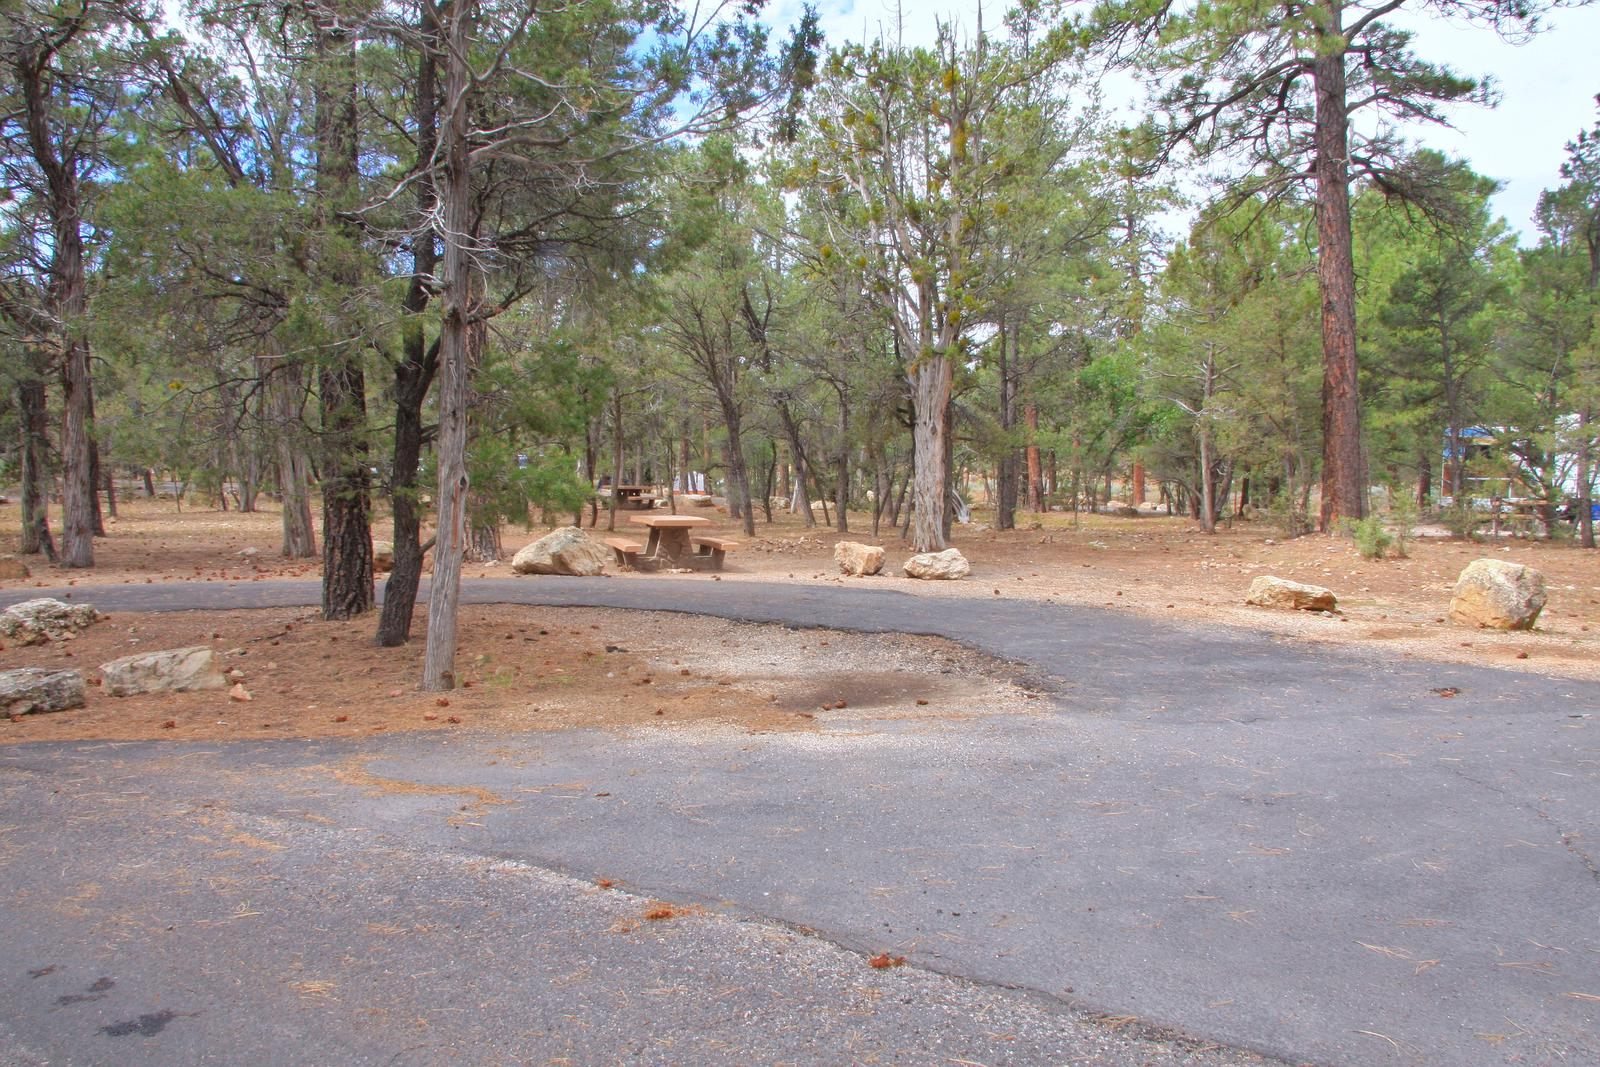 Parking spot and picnic table, Mather CampgroundThe parking spot and picnic table for Aspen Loop 16, Mather Campground